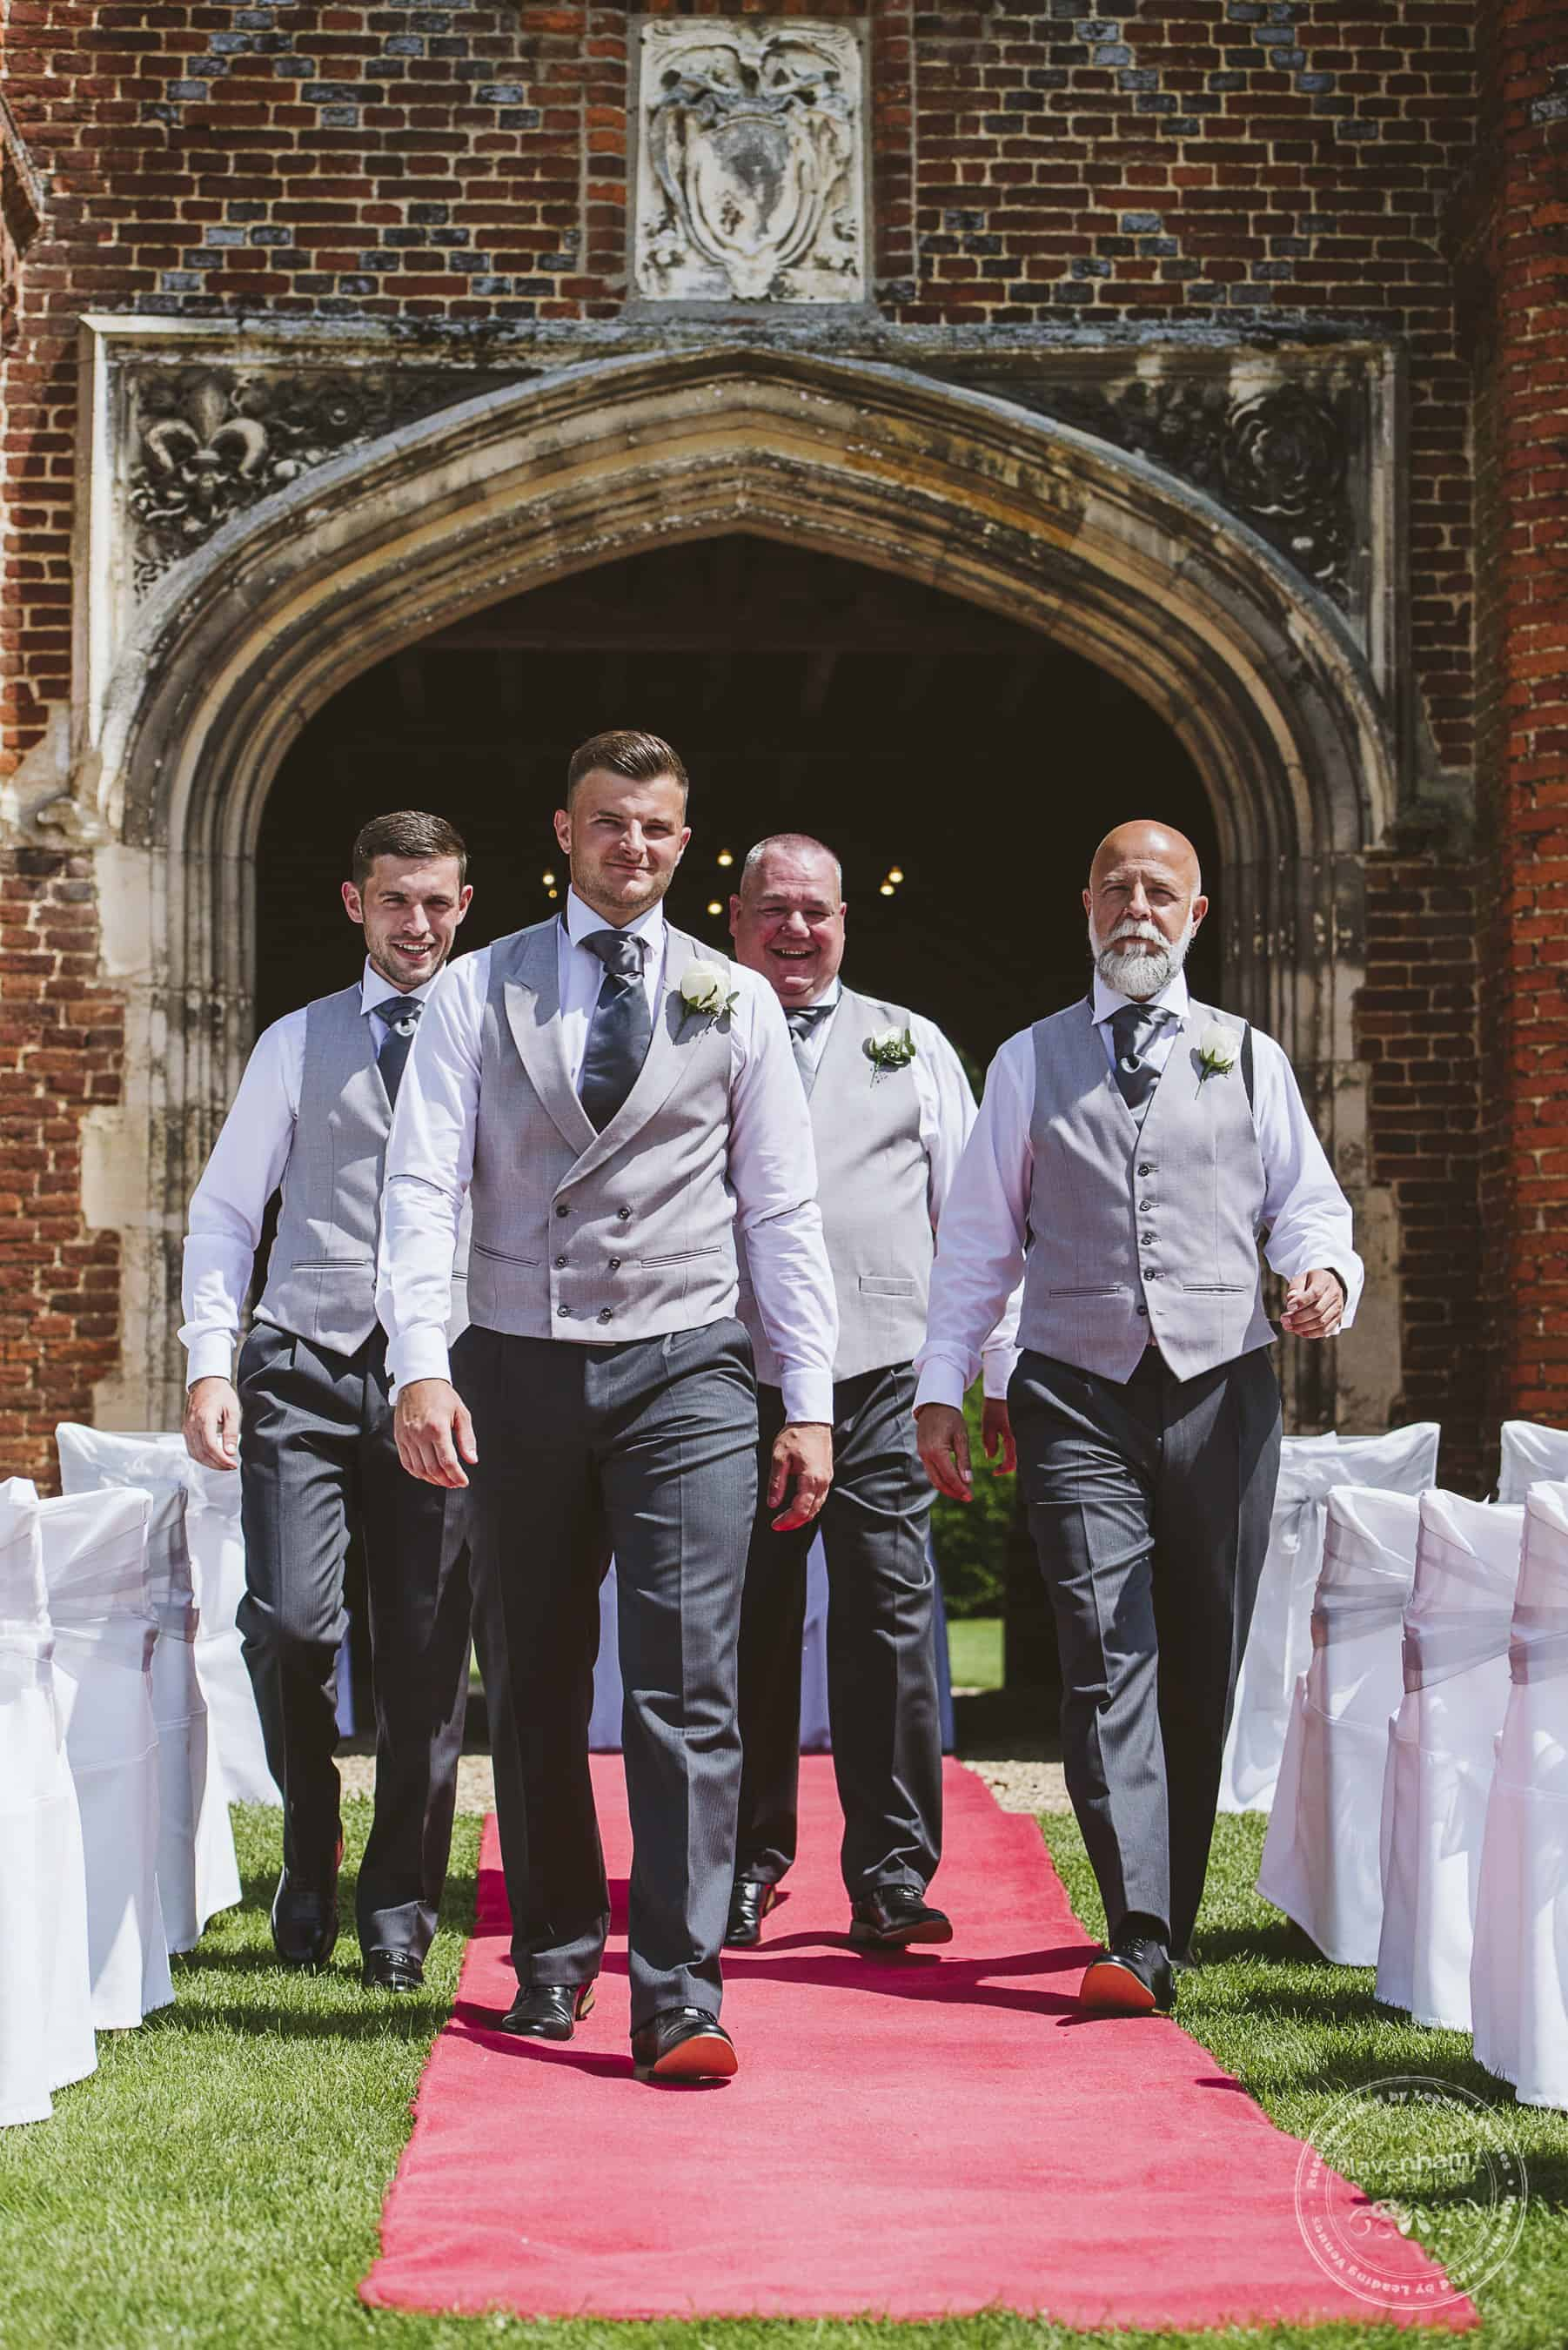 030618 Leez Priory Wedding Photography Lavenham Photographic 012